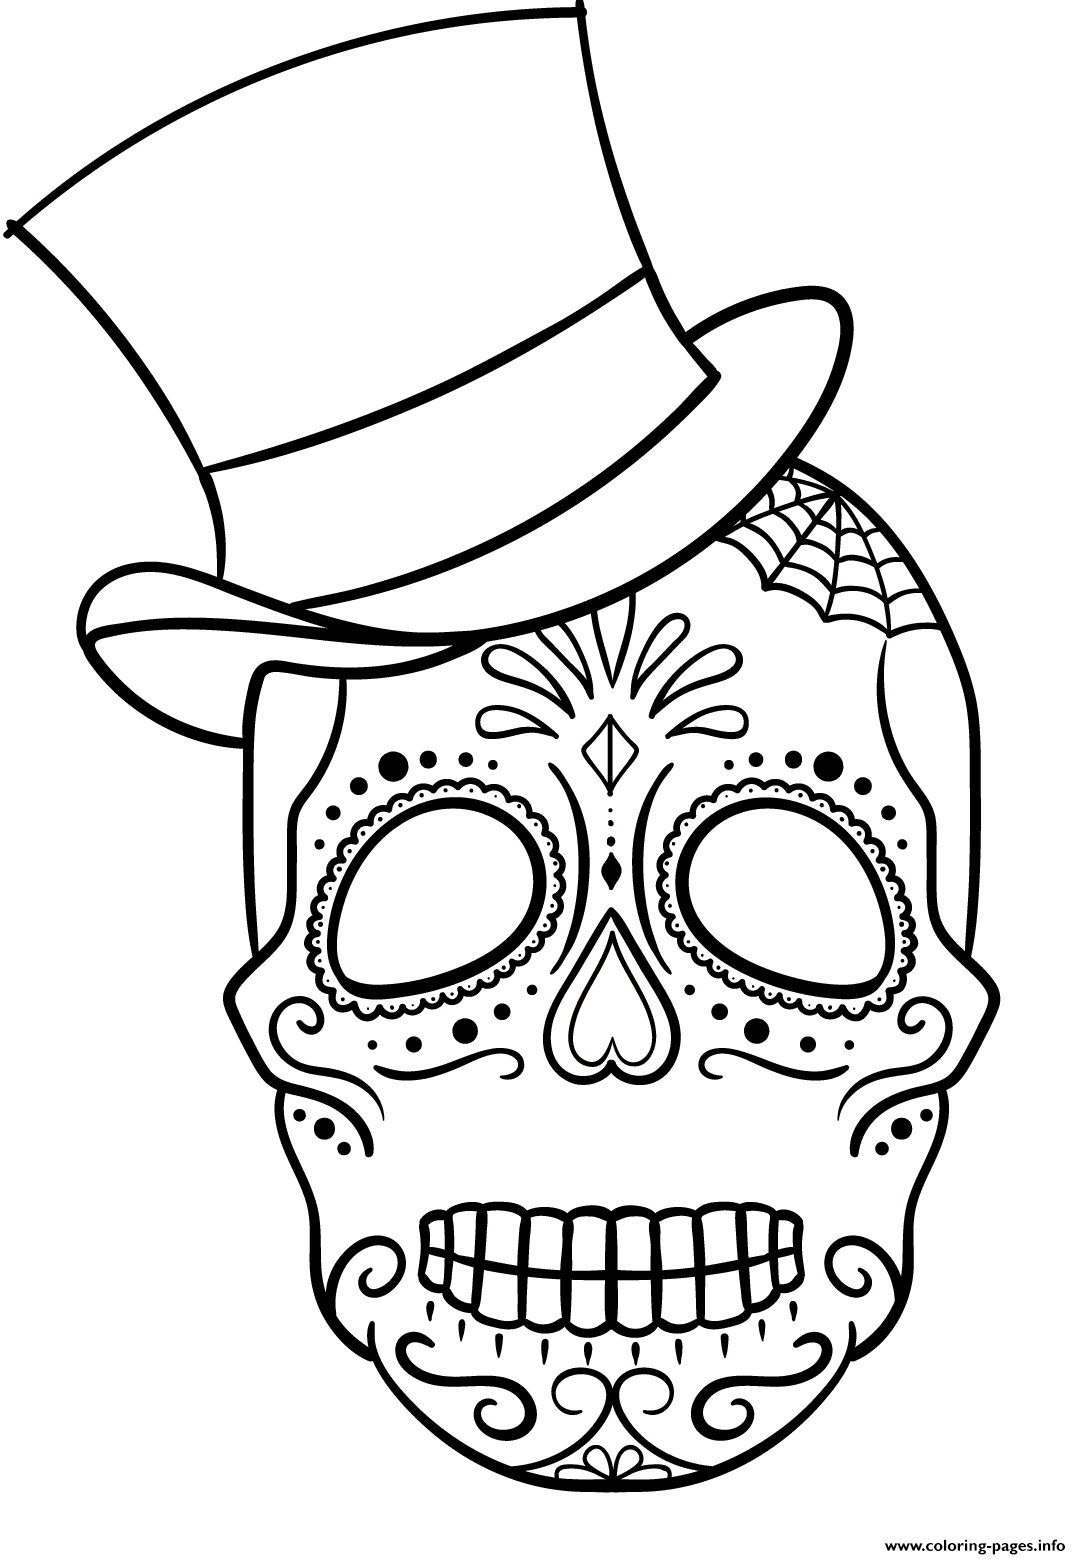 1494522045sugar Skull With Top Hat Calavera Png 1 081 1 559 Pixels Skull Coloring Pages Halloween Coloring Pages Coloring Pages